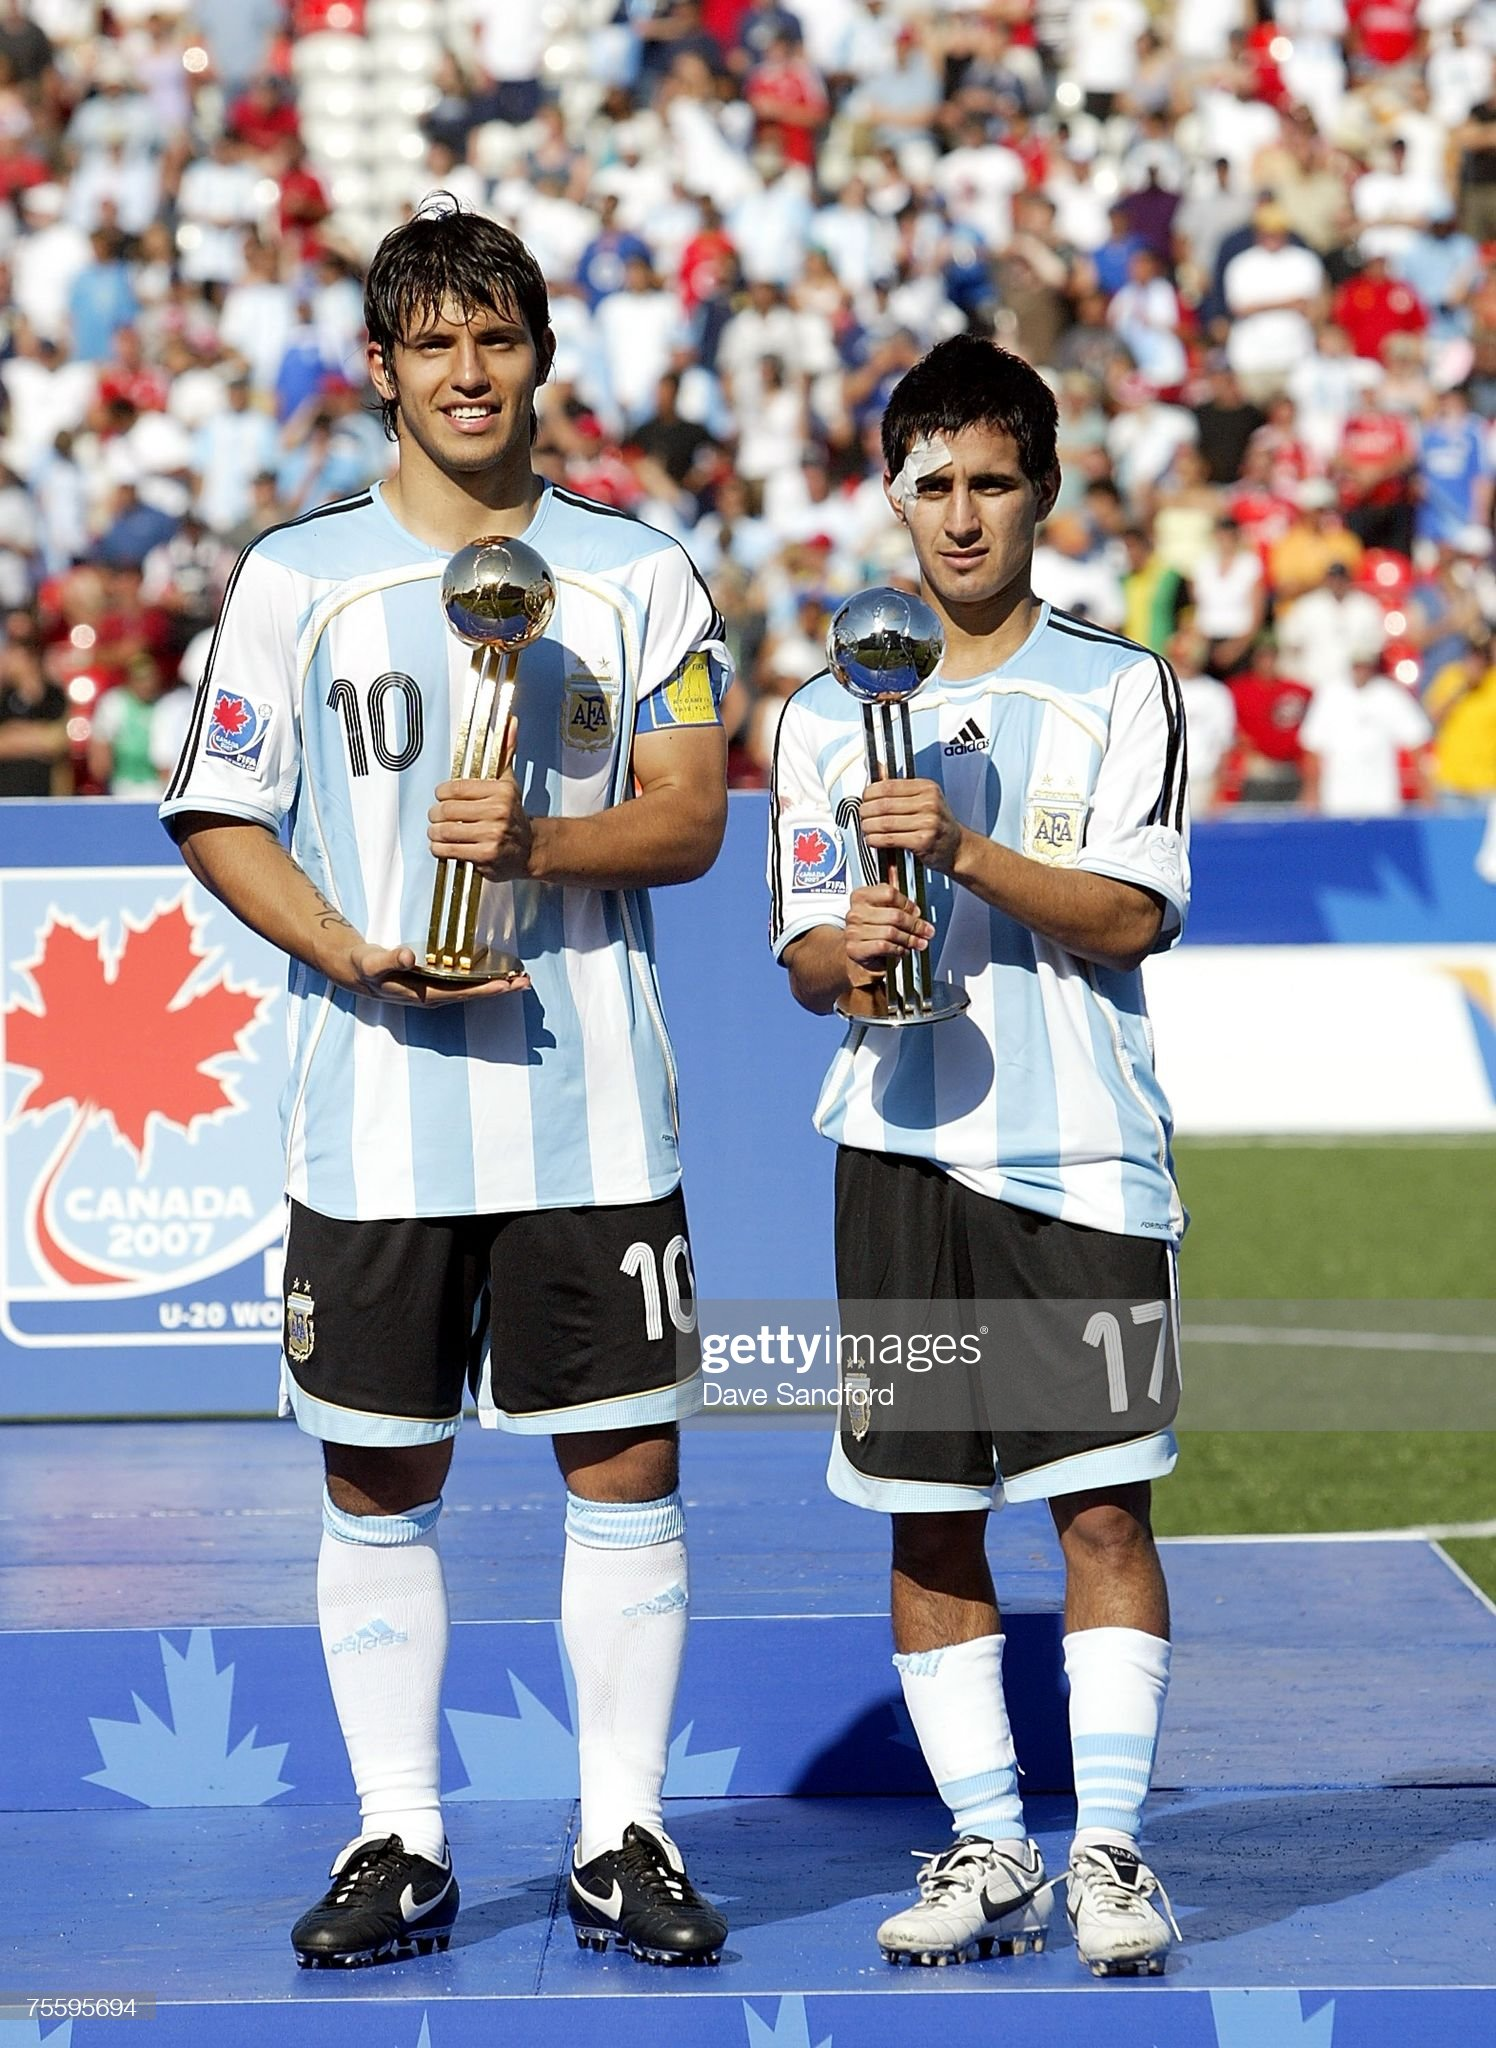 ¿Cuánto mide Maxi Moralez? - Altura - Real height Sergio-aguero-and-maximiliano-moralez-both-of-team-argentina-hold-the-picture-id75595694?s=2048x2048